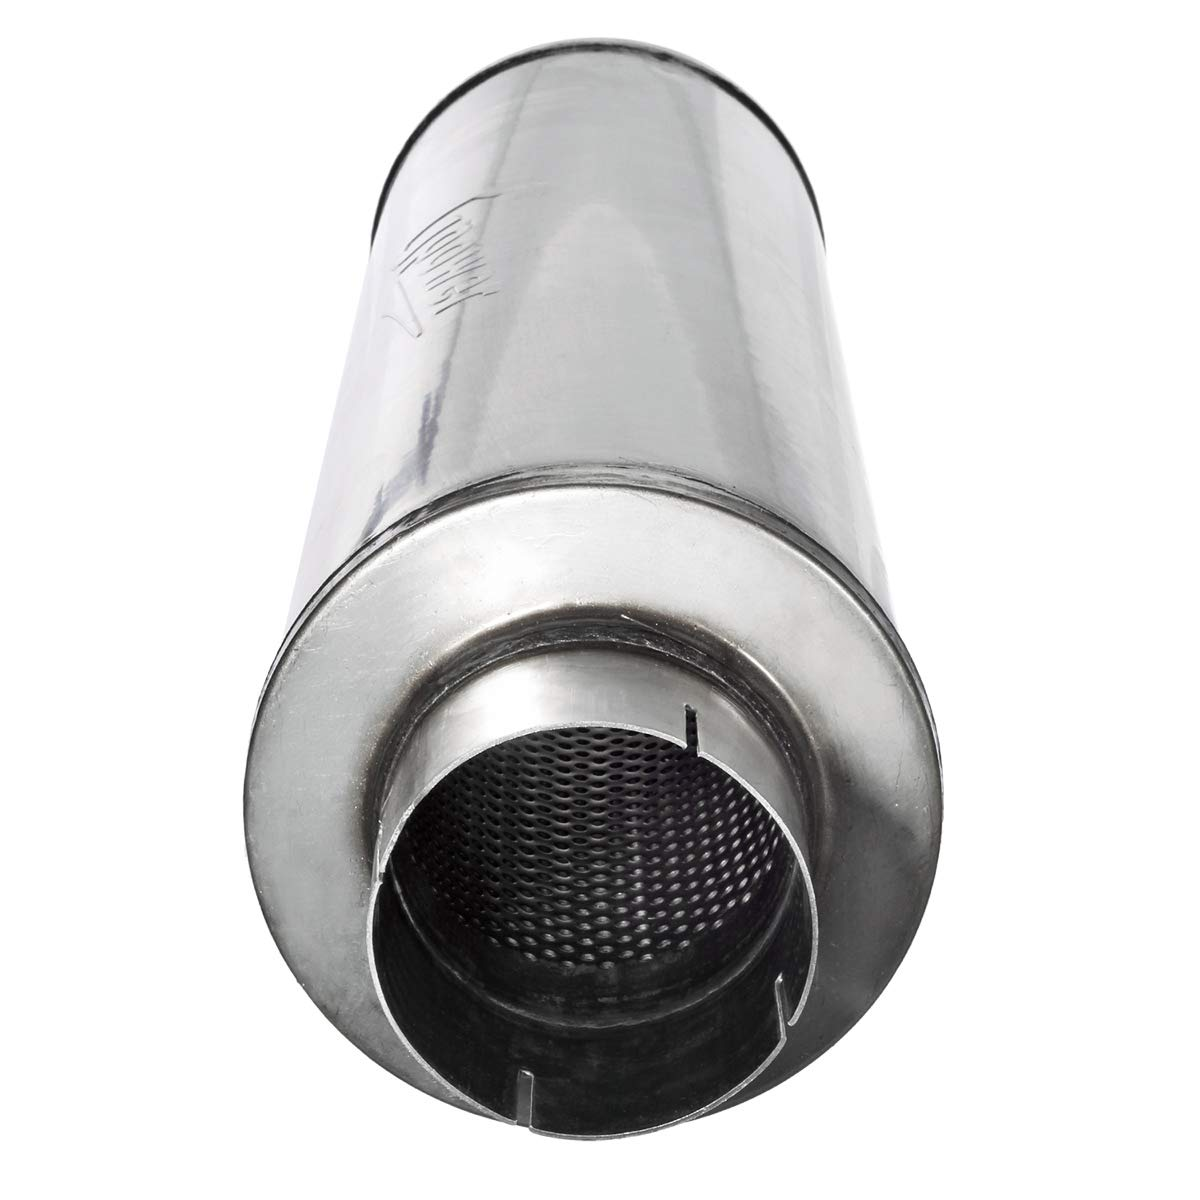 Straight Through Upower 4 Inlet Stainless Steel Diesel Exhaust Muffler 7 x 24 Body 30 Whole Length XS2772